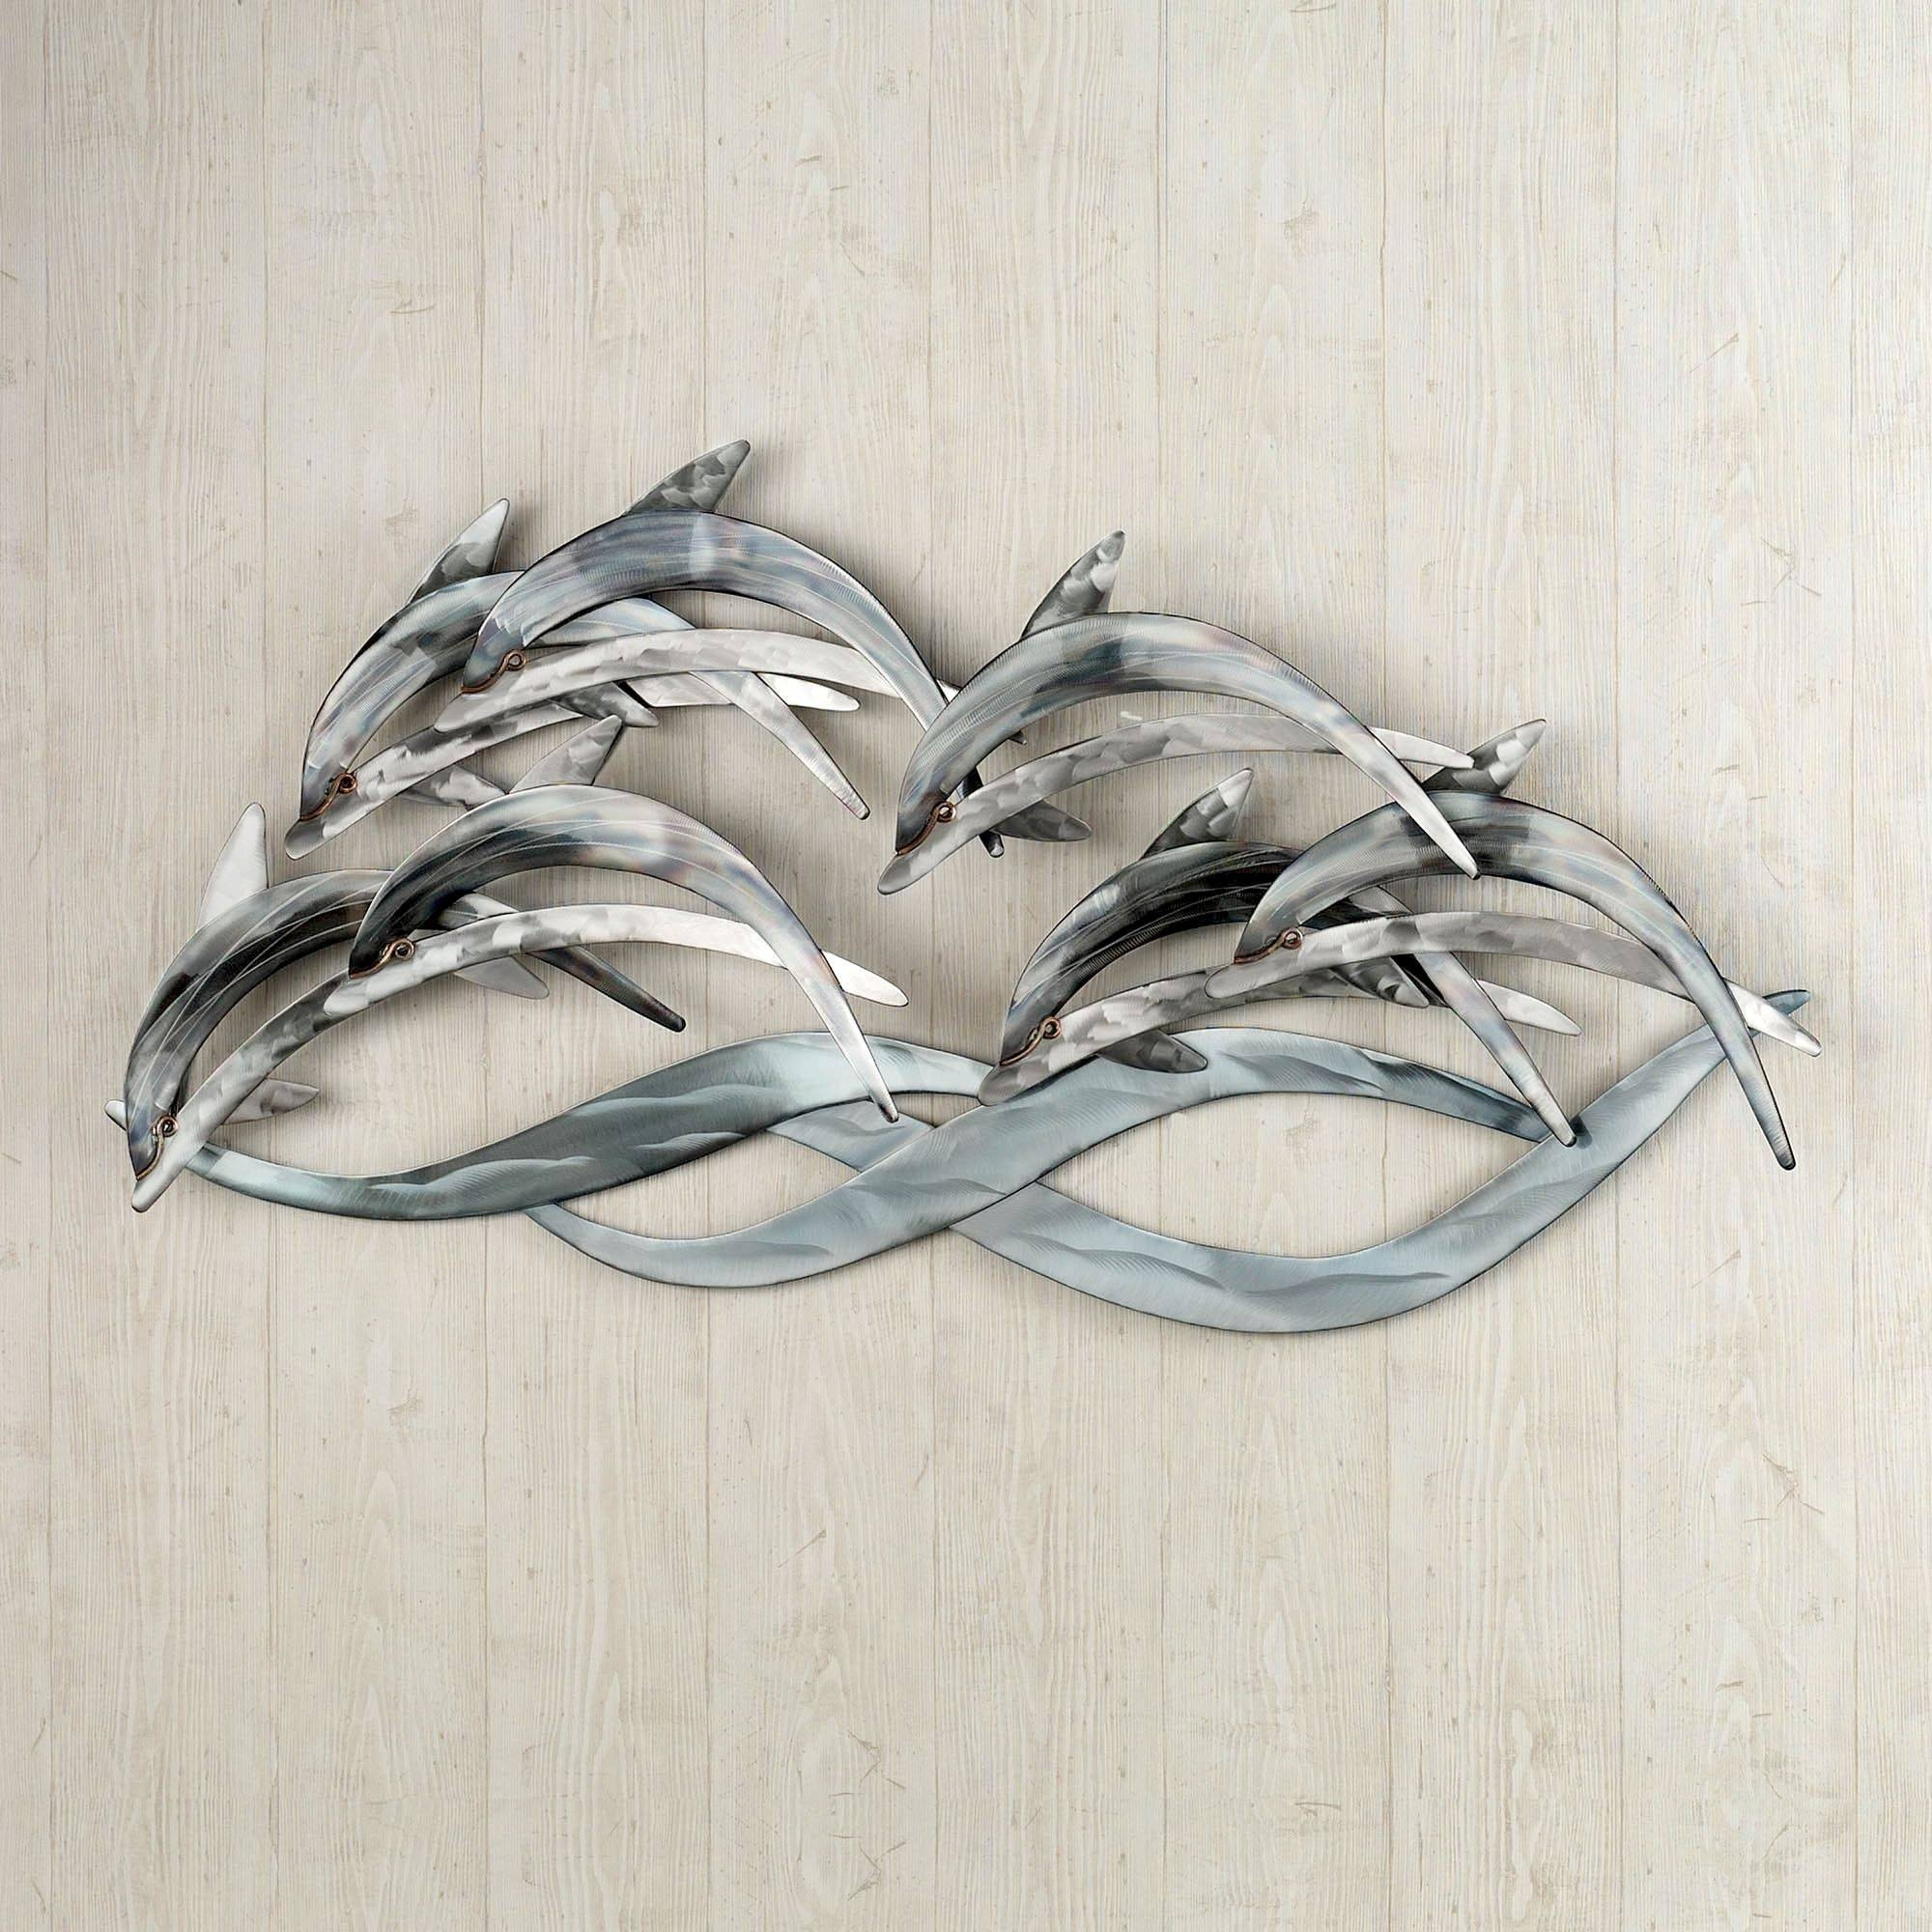 Wave Dancers Dolphin Stainless Steel Wall Sculpture With Regard To Most Current Animal Metal Wall Art (View 15 of 20)